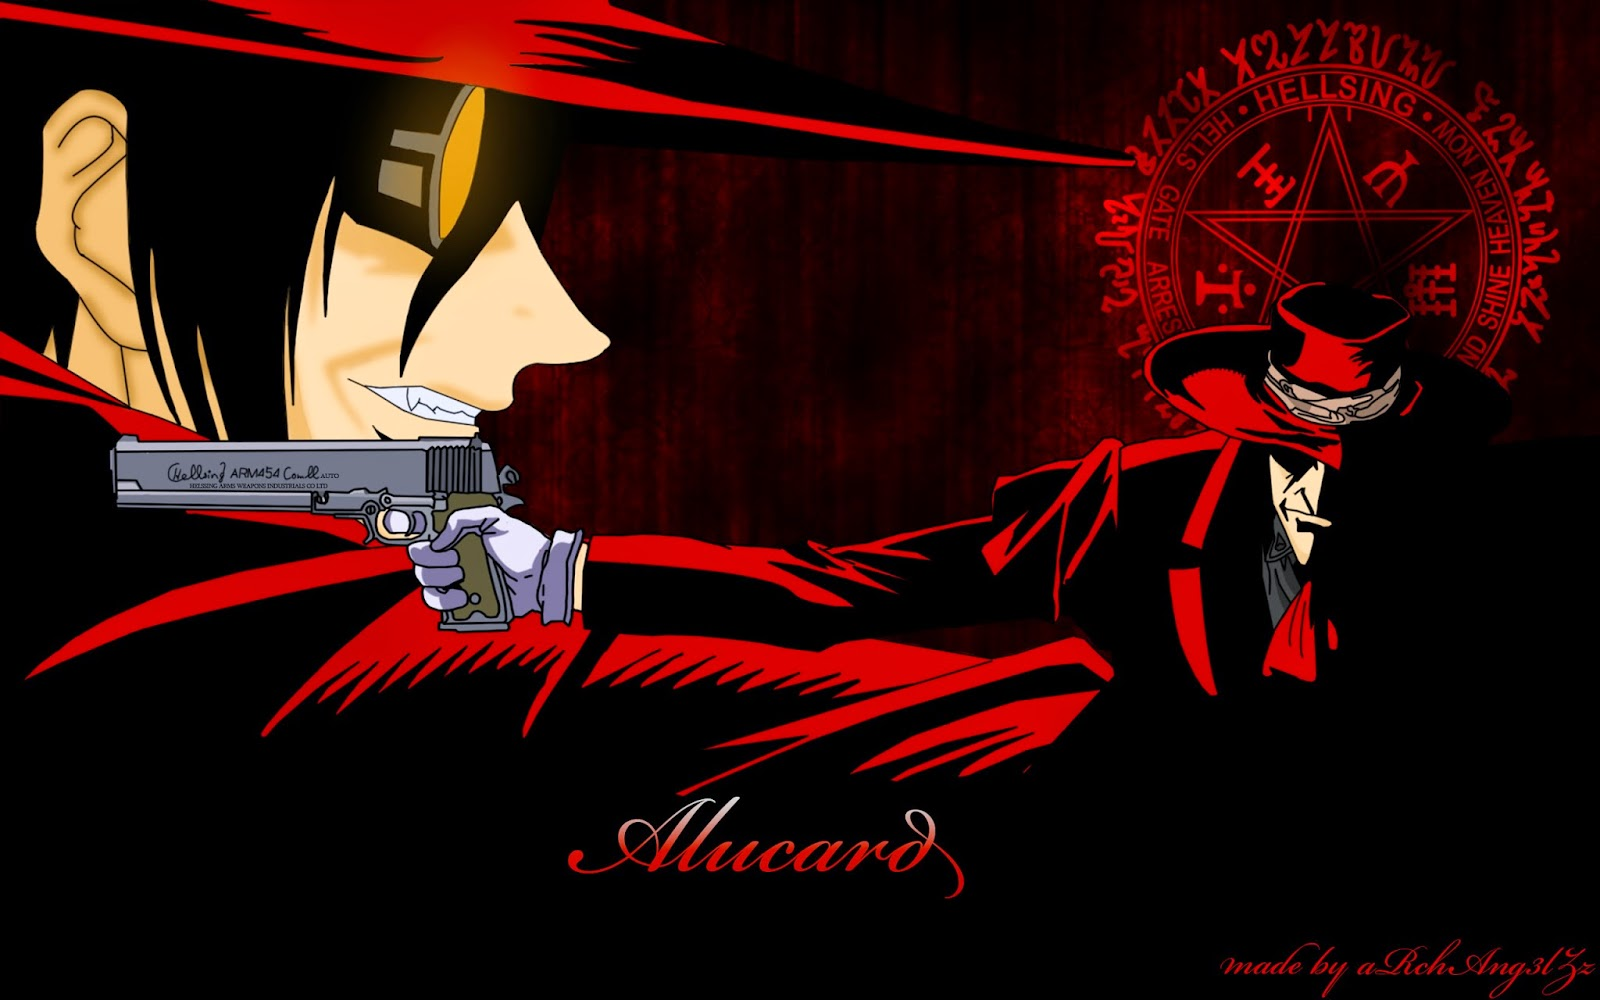 Anime wallpapers hd wallpapers hellsing hd - Anime hellsing wallpaper ...